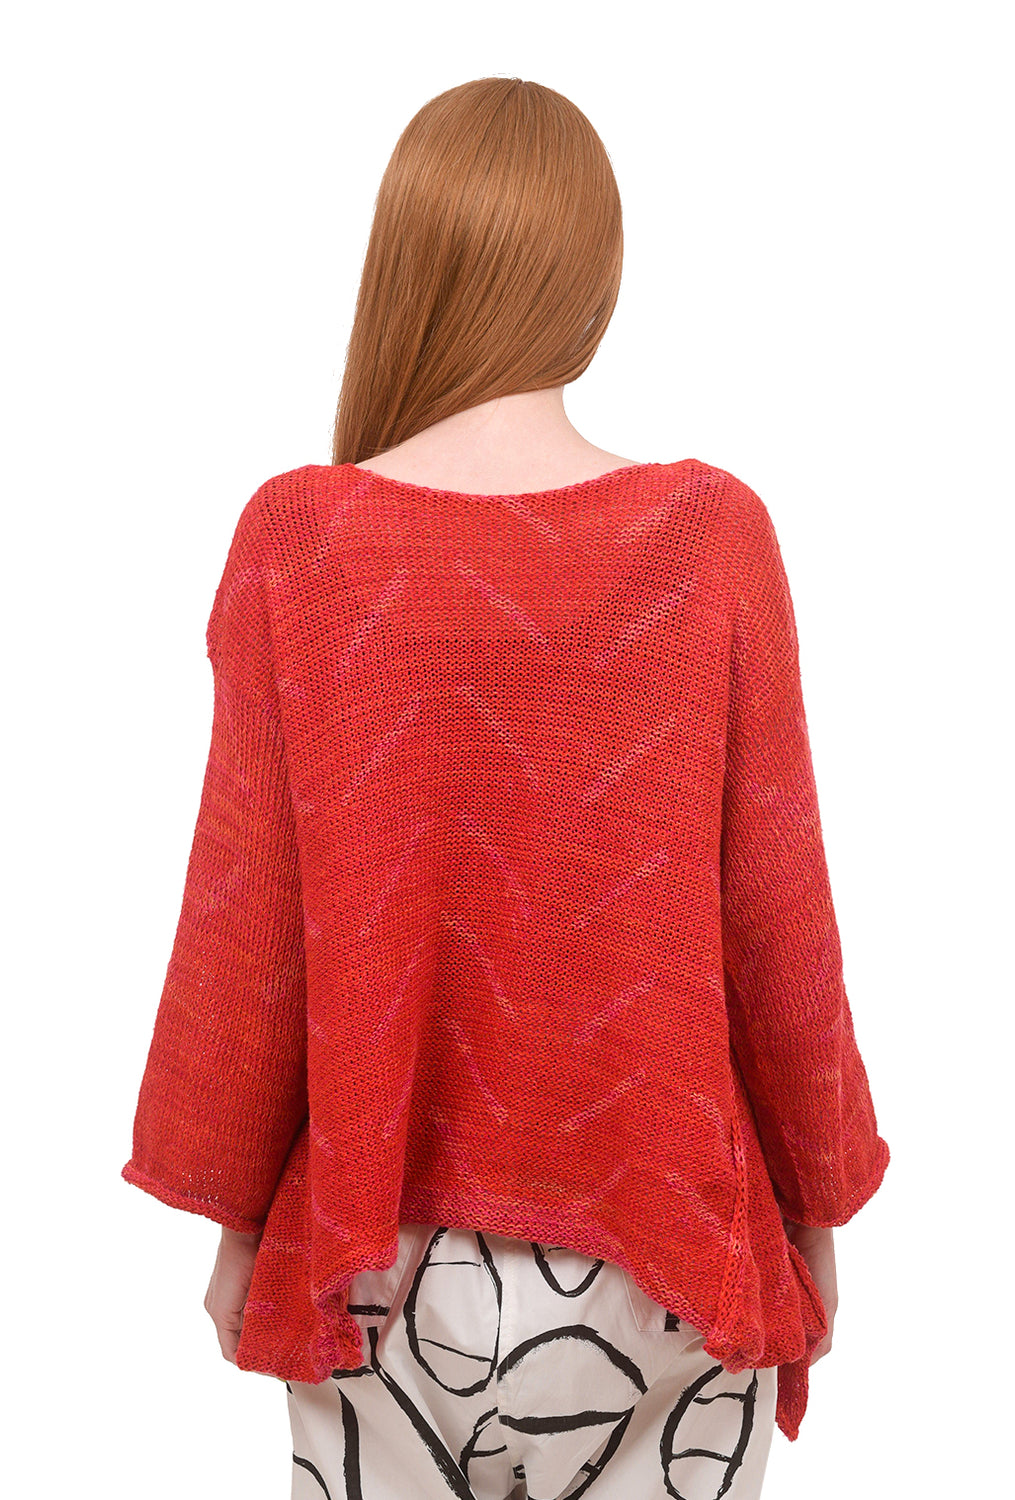 Skif International High-Low Picnic Sweater, Fuchsia One Size Fuchsia